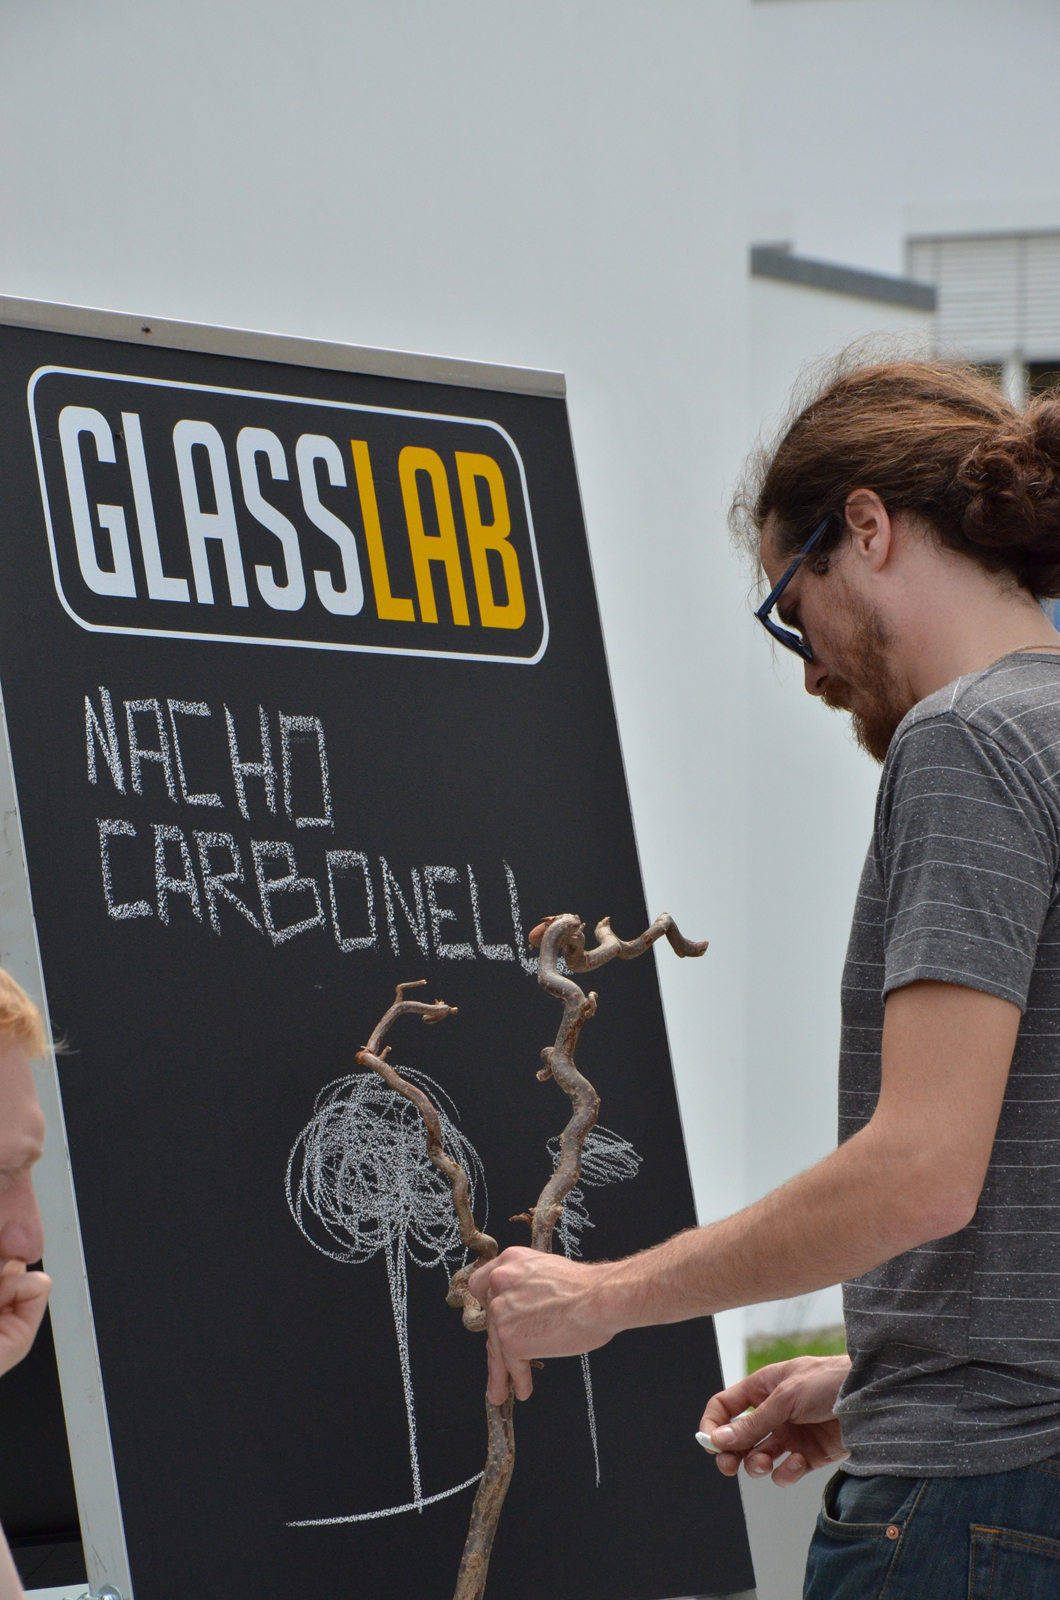 Designer Nacho Carbonell at GlassLab Art basel 2010 at Vitra Design Museum